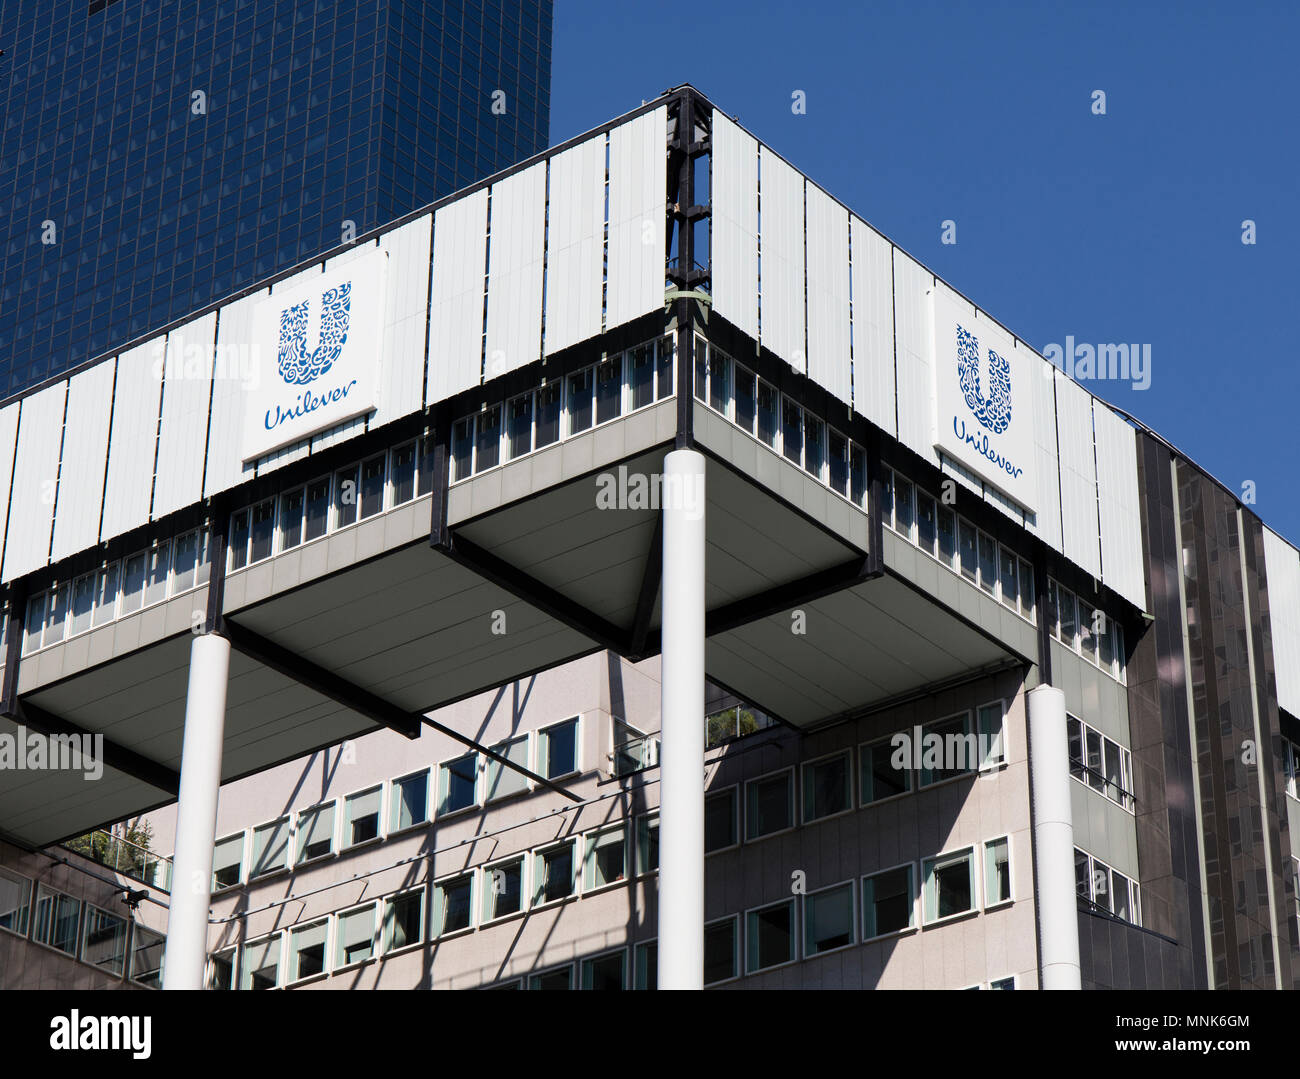 Rotterdam, Netherlands -may 8, 2018: Unilever building in Rotterdam, Netherlands - Stock Image